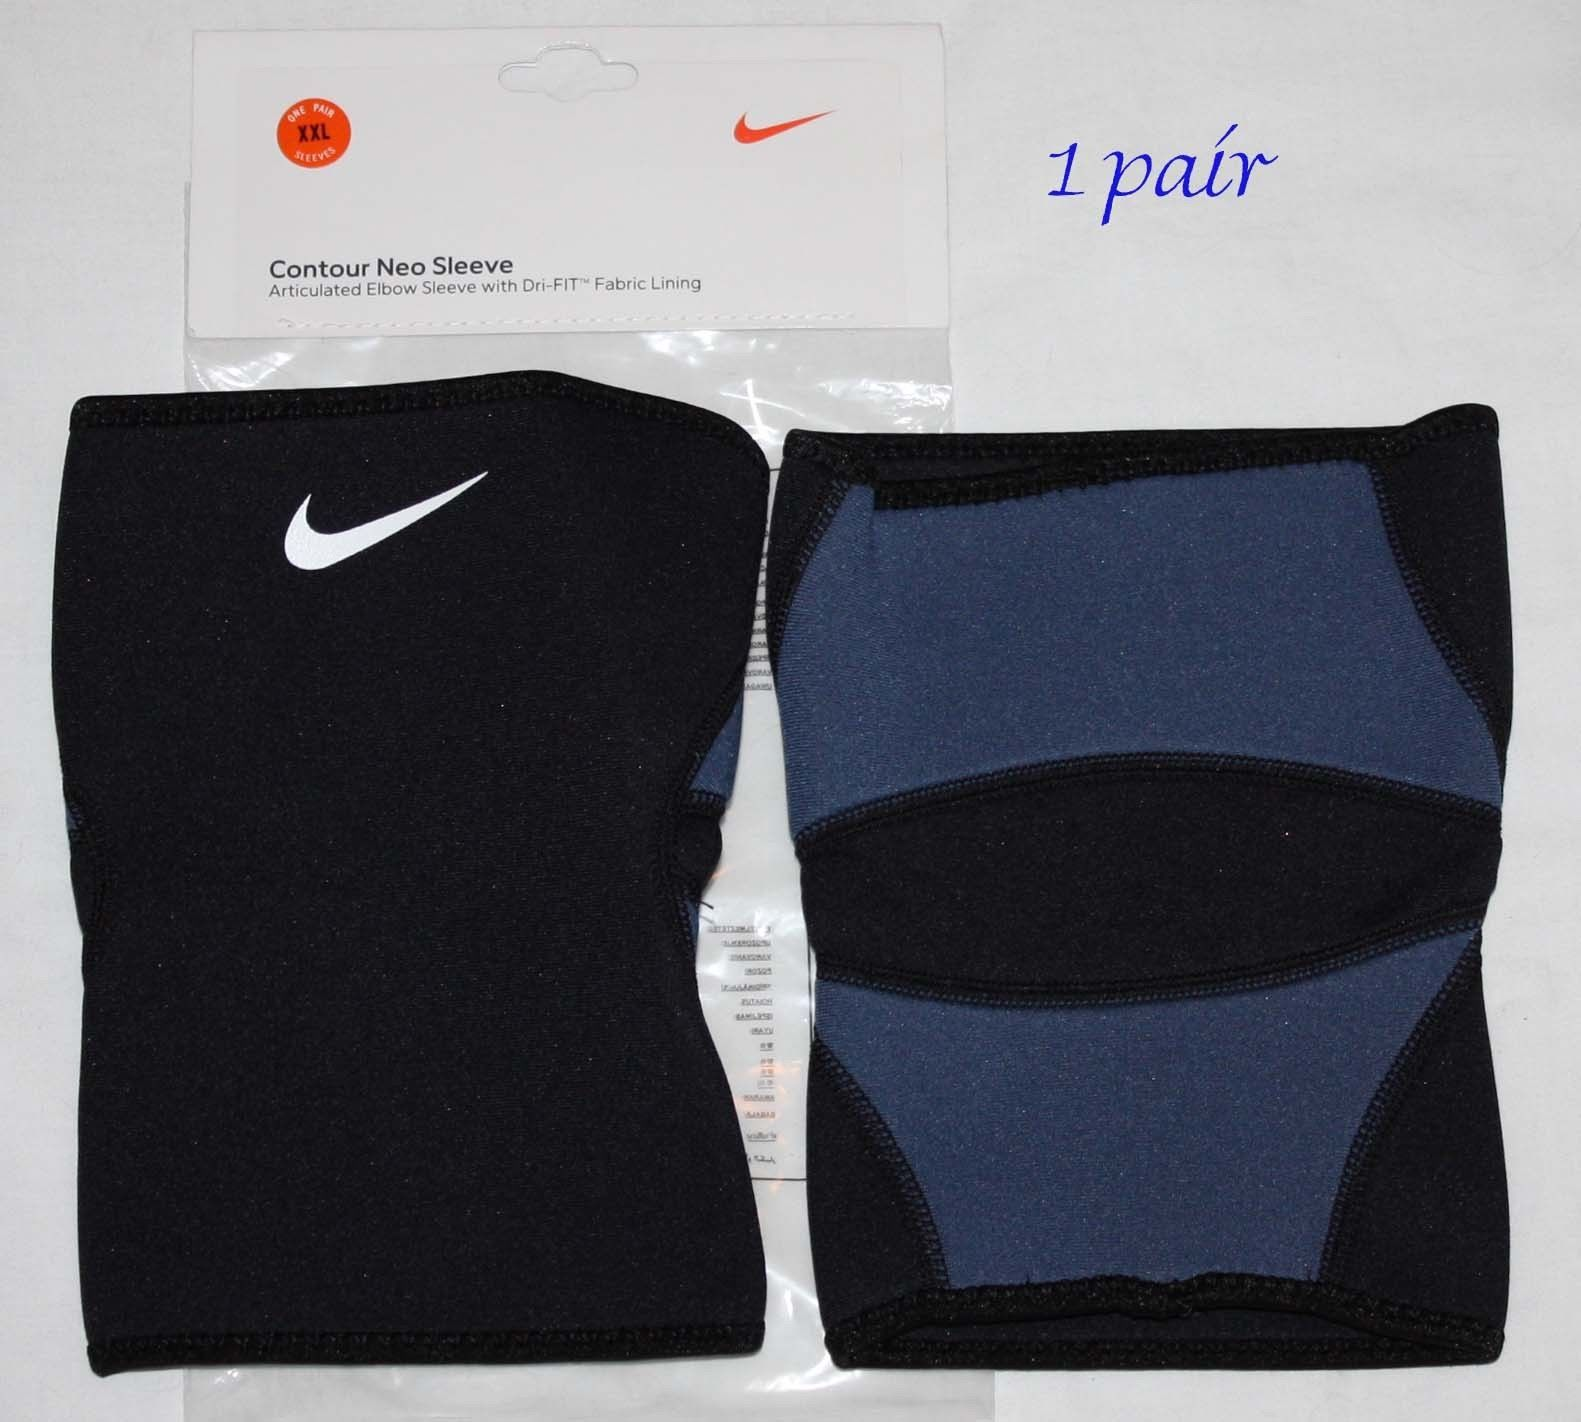 1 Pair Nike Dri-Fit Black/Blue Articulated Contour Neo Elbow Sleeve (XX-Large) 11282